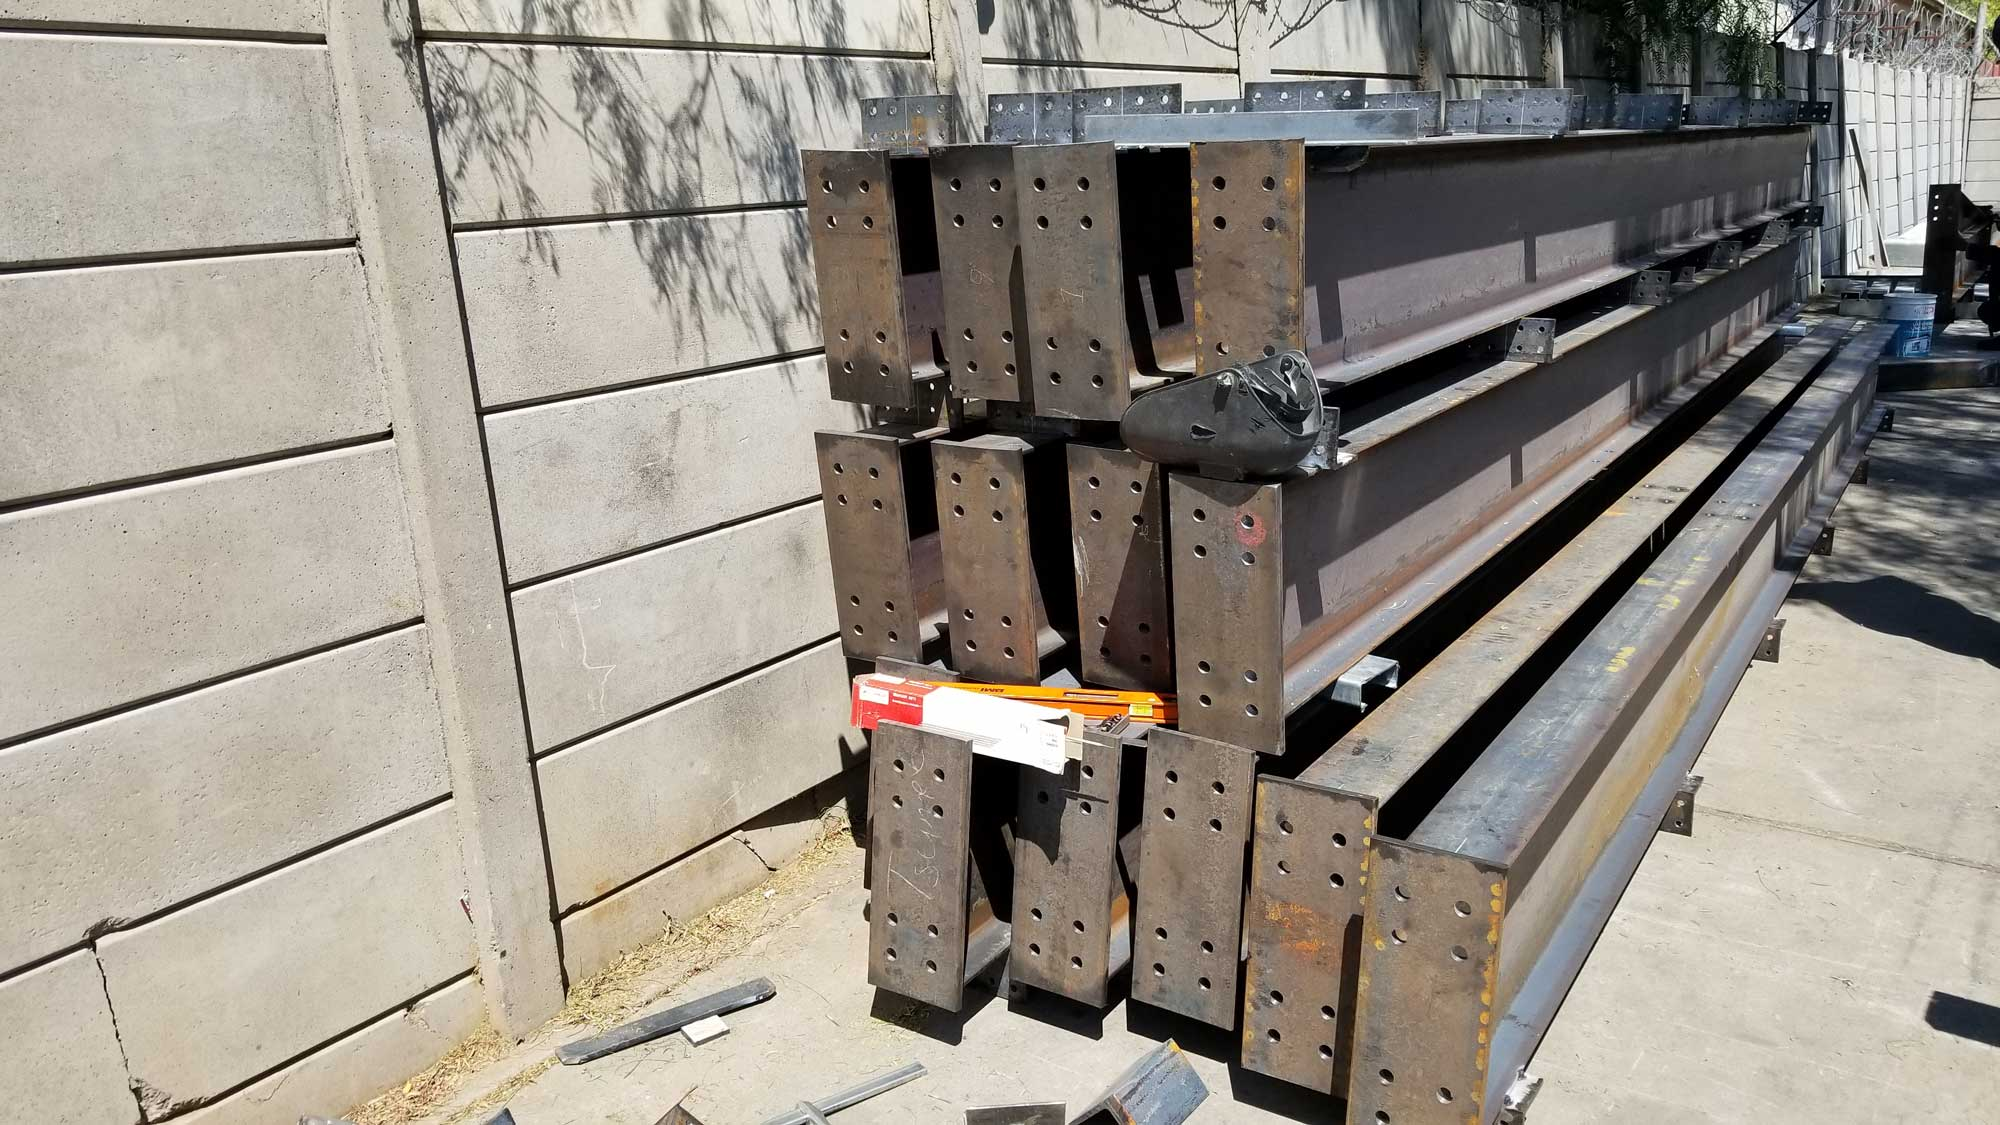 Typical portal steel rafters with connection plates and purlin cleats, all processed on the Ocean Avenger at Invo Stahlbau, Windhoek Namibia